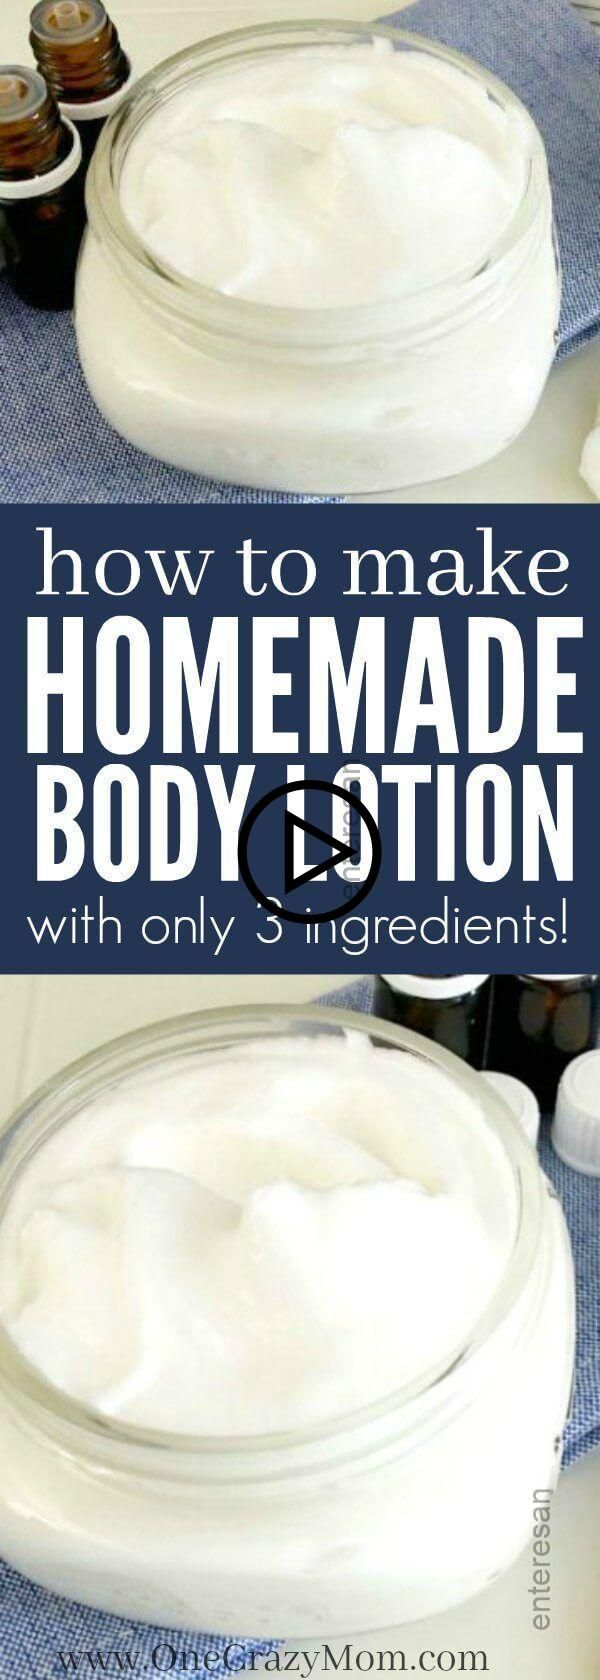 This #homemade #body #lotion #is #easy #to #make. #Learn #how #to #make #homemade #lotion #that #is #all #natural. #Homemade #lotion #recipe #is #frugal #too. #You #will #love #how #well #this #homemade #lotion #works #on #dry #skin! # #onecrazymom # #bodylotion # #homemade #, #Body #bodylotion #Dry #easy #frugal #Homemade #Learn #Lotion #love #Natural #onecrazymom #Recipe #skin #Works,This...